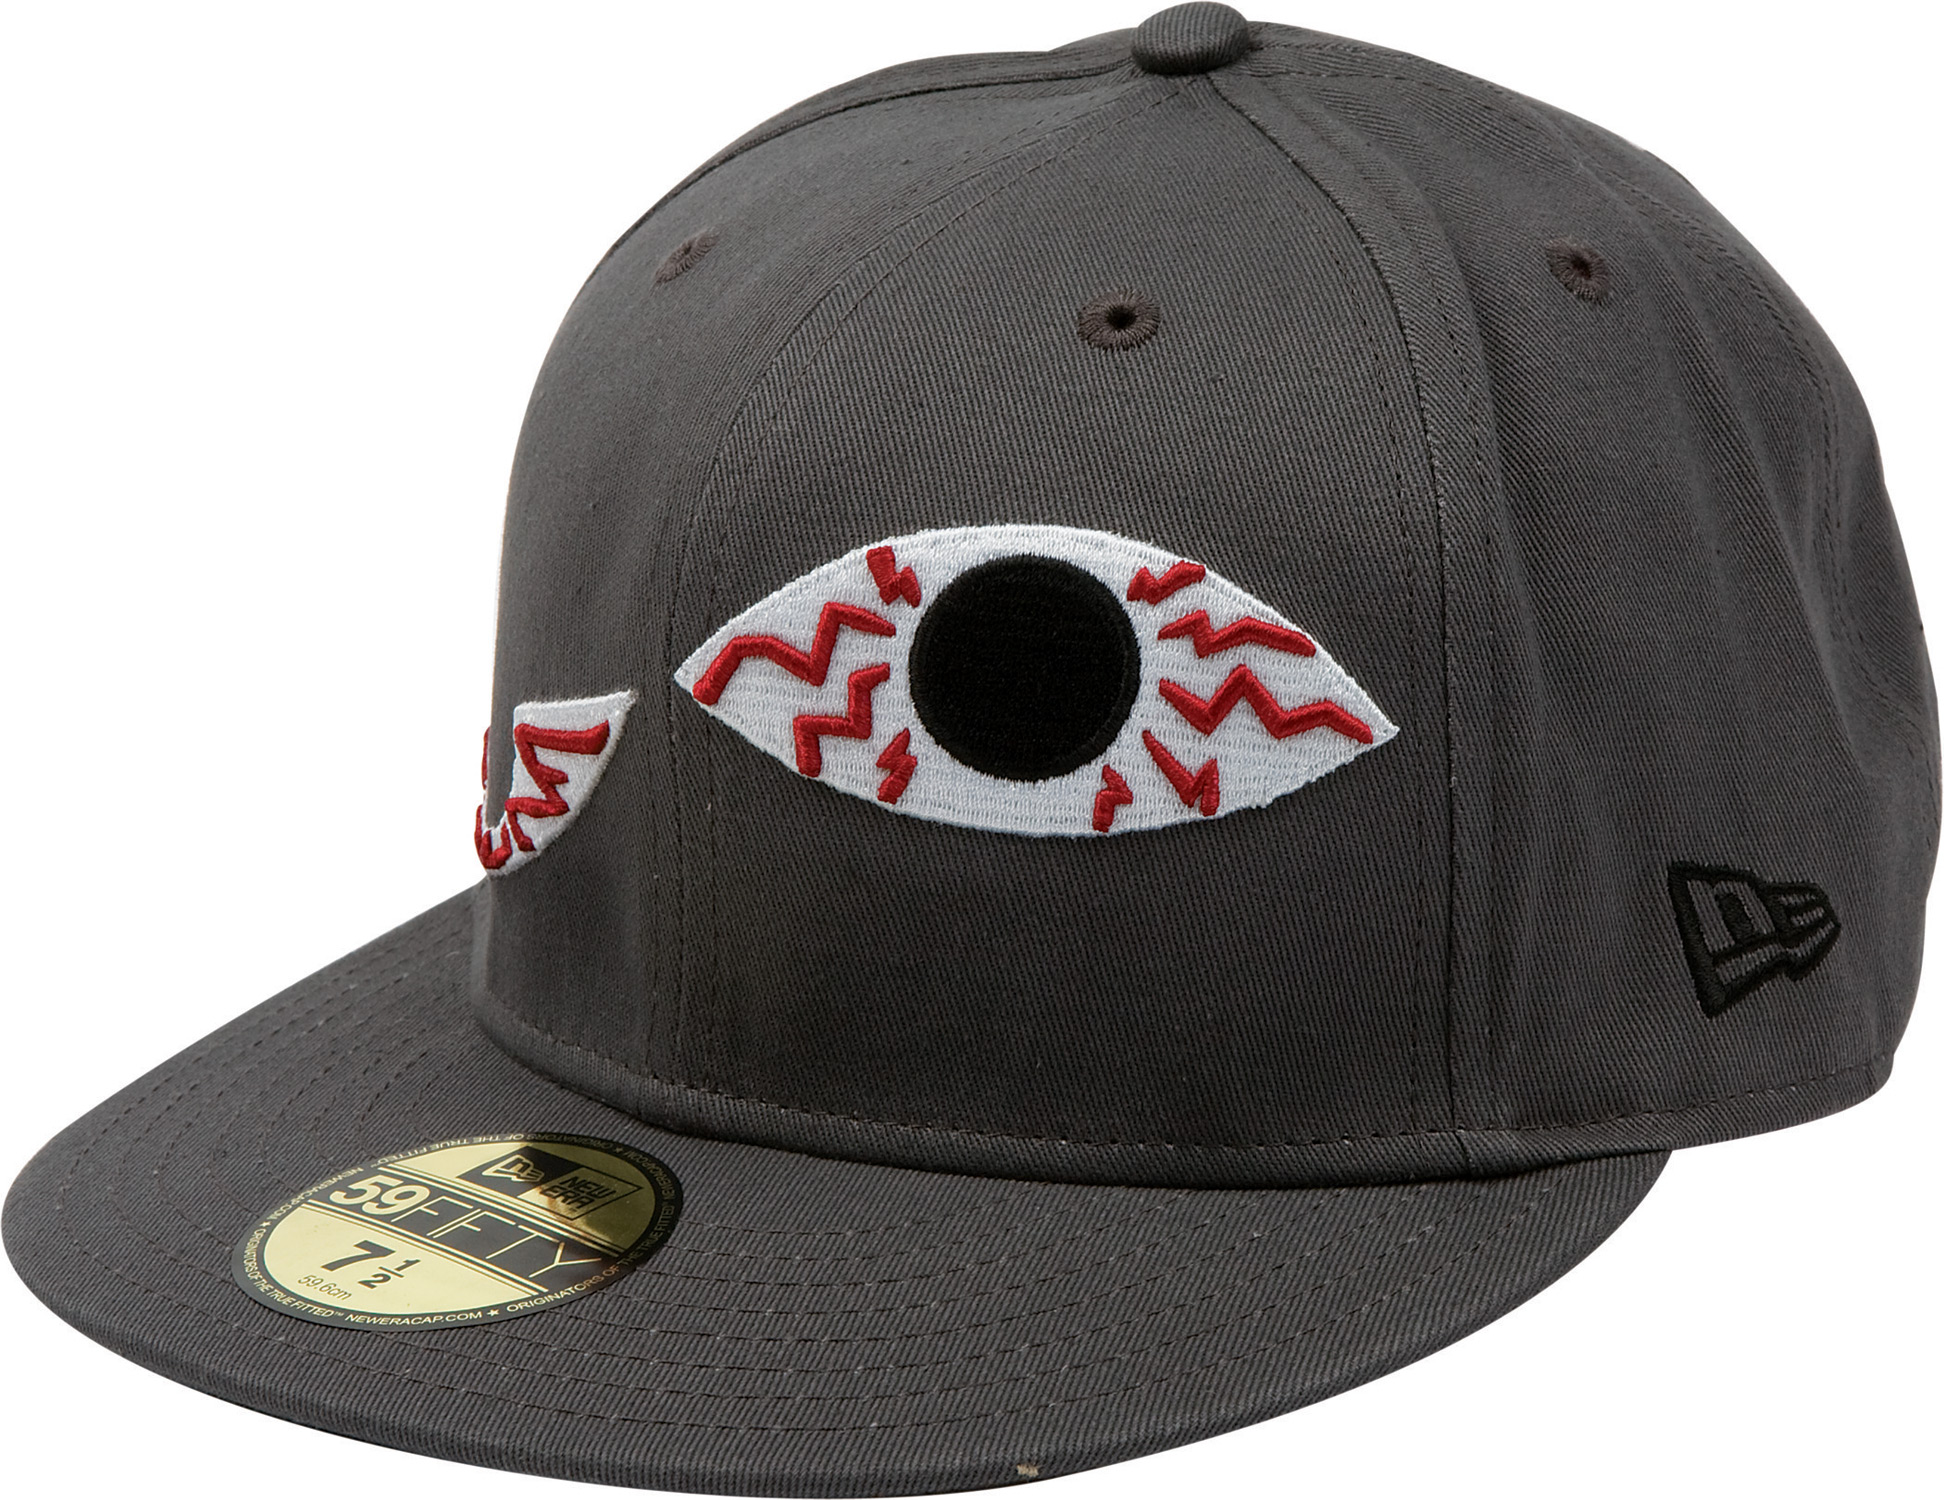 Forum Seeker New Era Cap Grey - $10.95